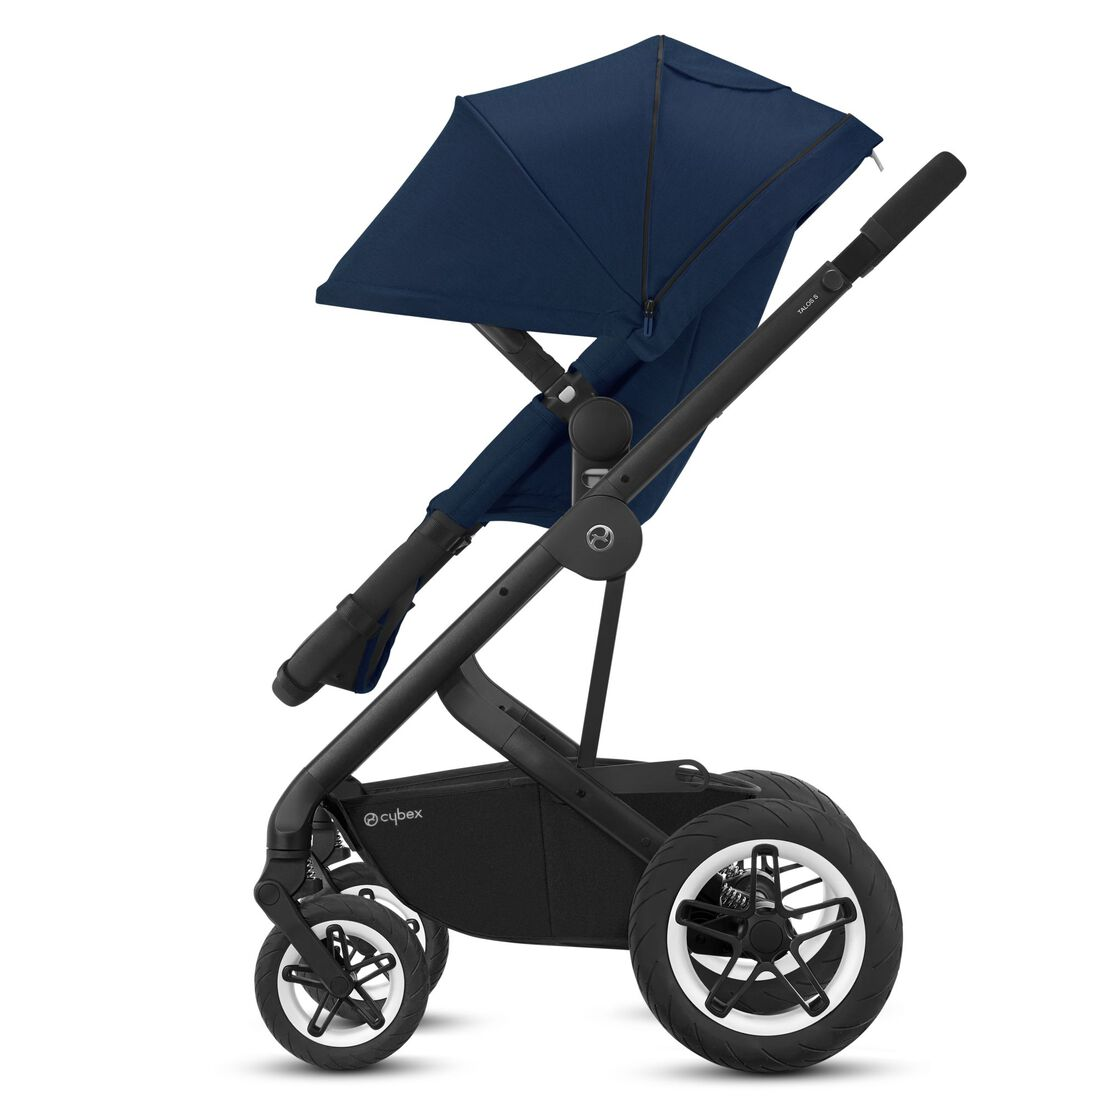 CYBEX Talos S 2-in-1 - Navy Blue in Navy Blue large image number 5